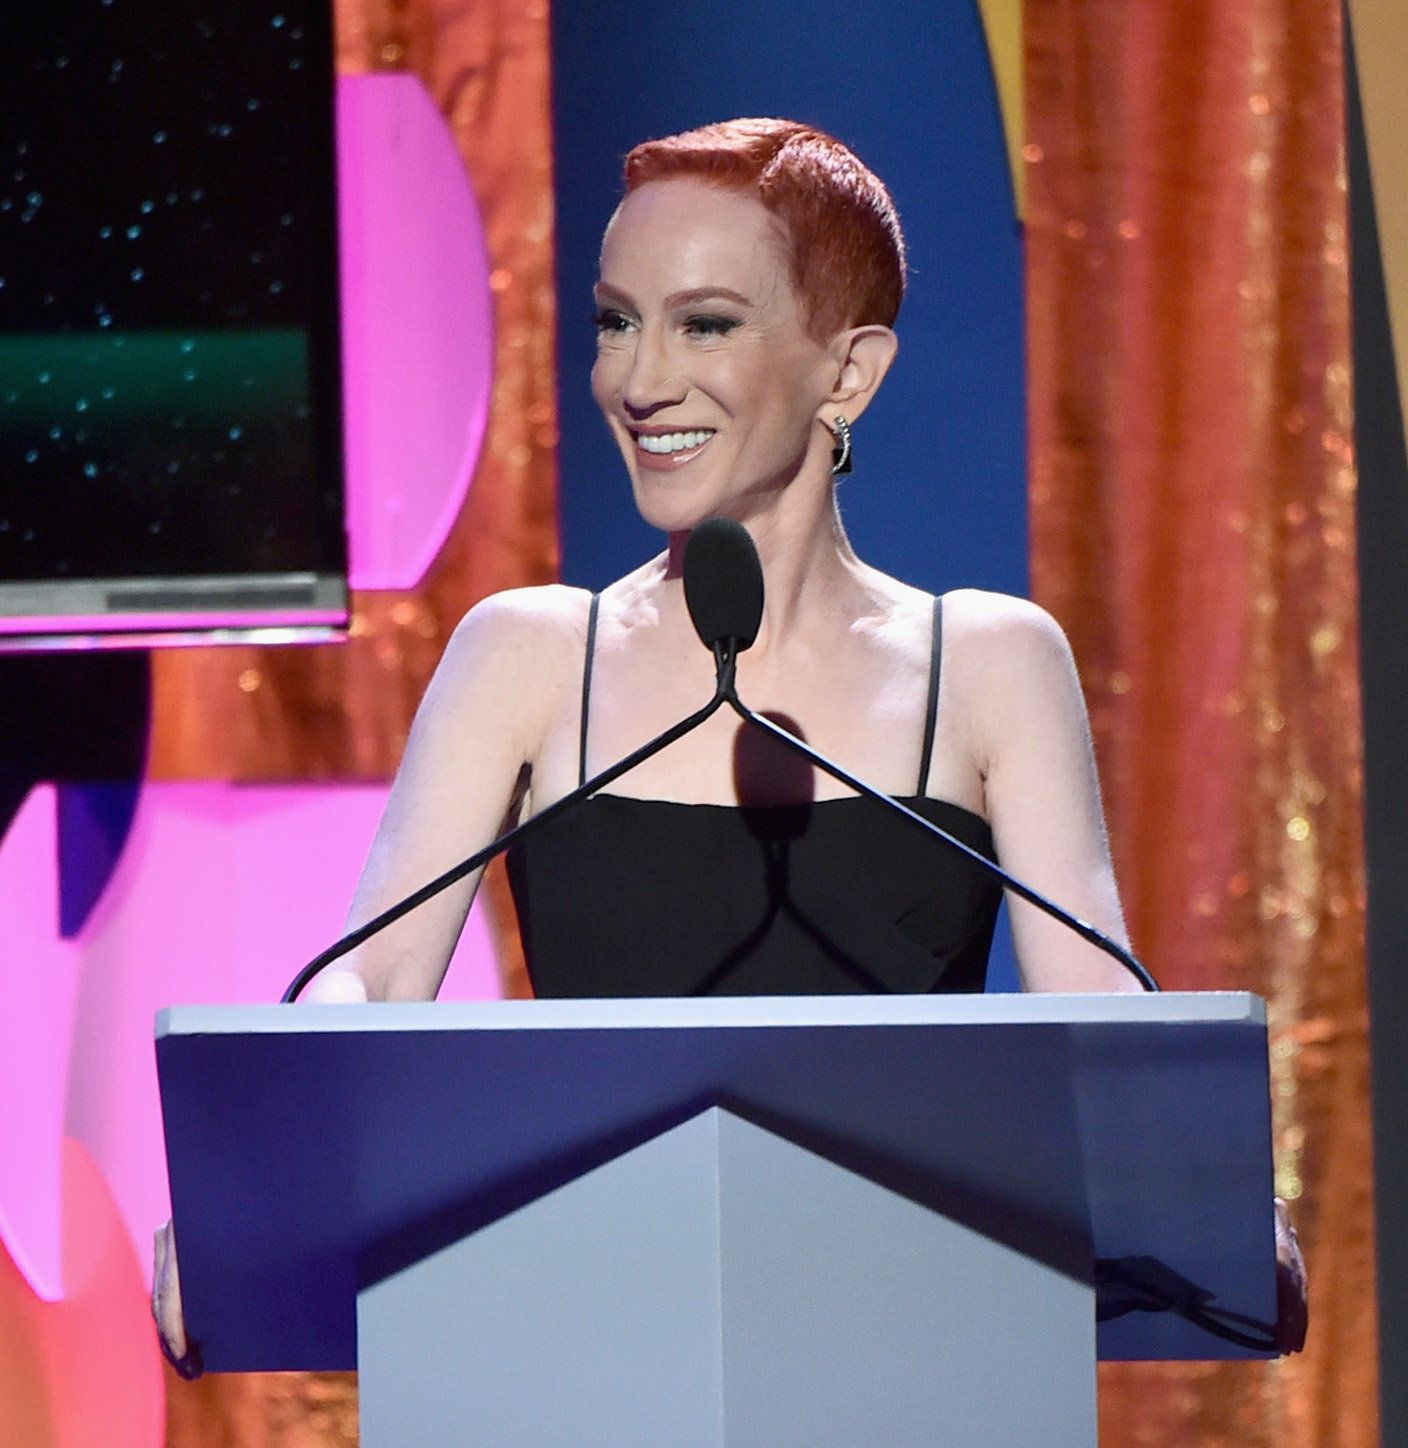 BEVERLY HILLS, CA - FEBRUARY 11:  Comedian Kathy Griffin speaks onstage during the 2018 Writers Guild Awards L.A. Ceremony at The Beverly Hilton Hotel on February 11, 2018 in Beverly Hills, California.  (Photo by Alberto E. Rodriguez/Getty Images for 2018 Writers Guild Awards L.A. Ceremony )